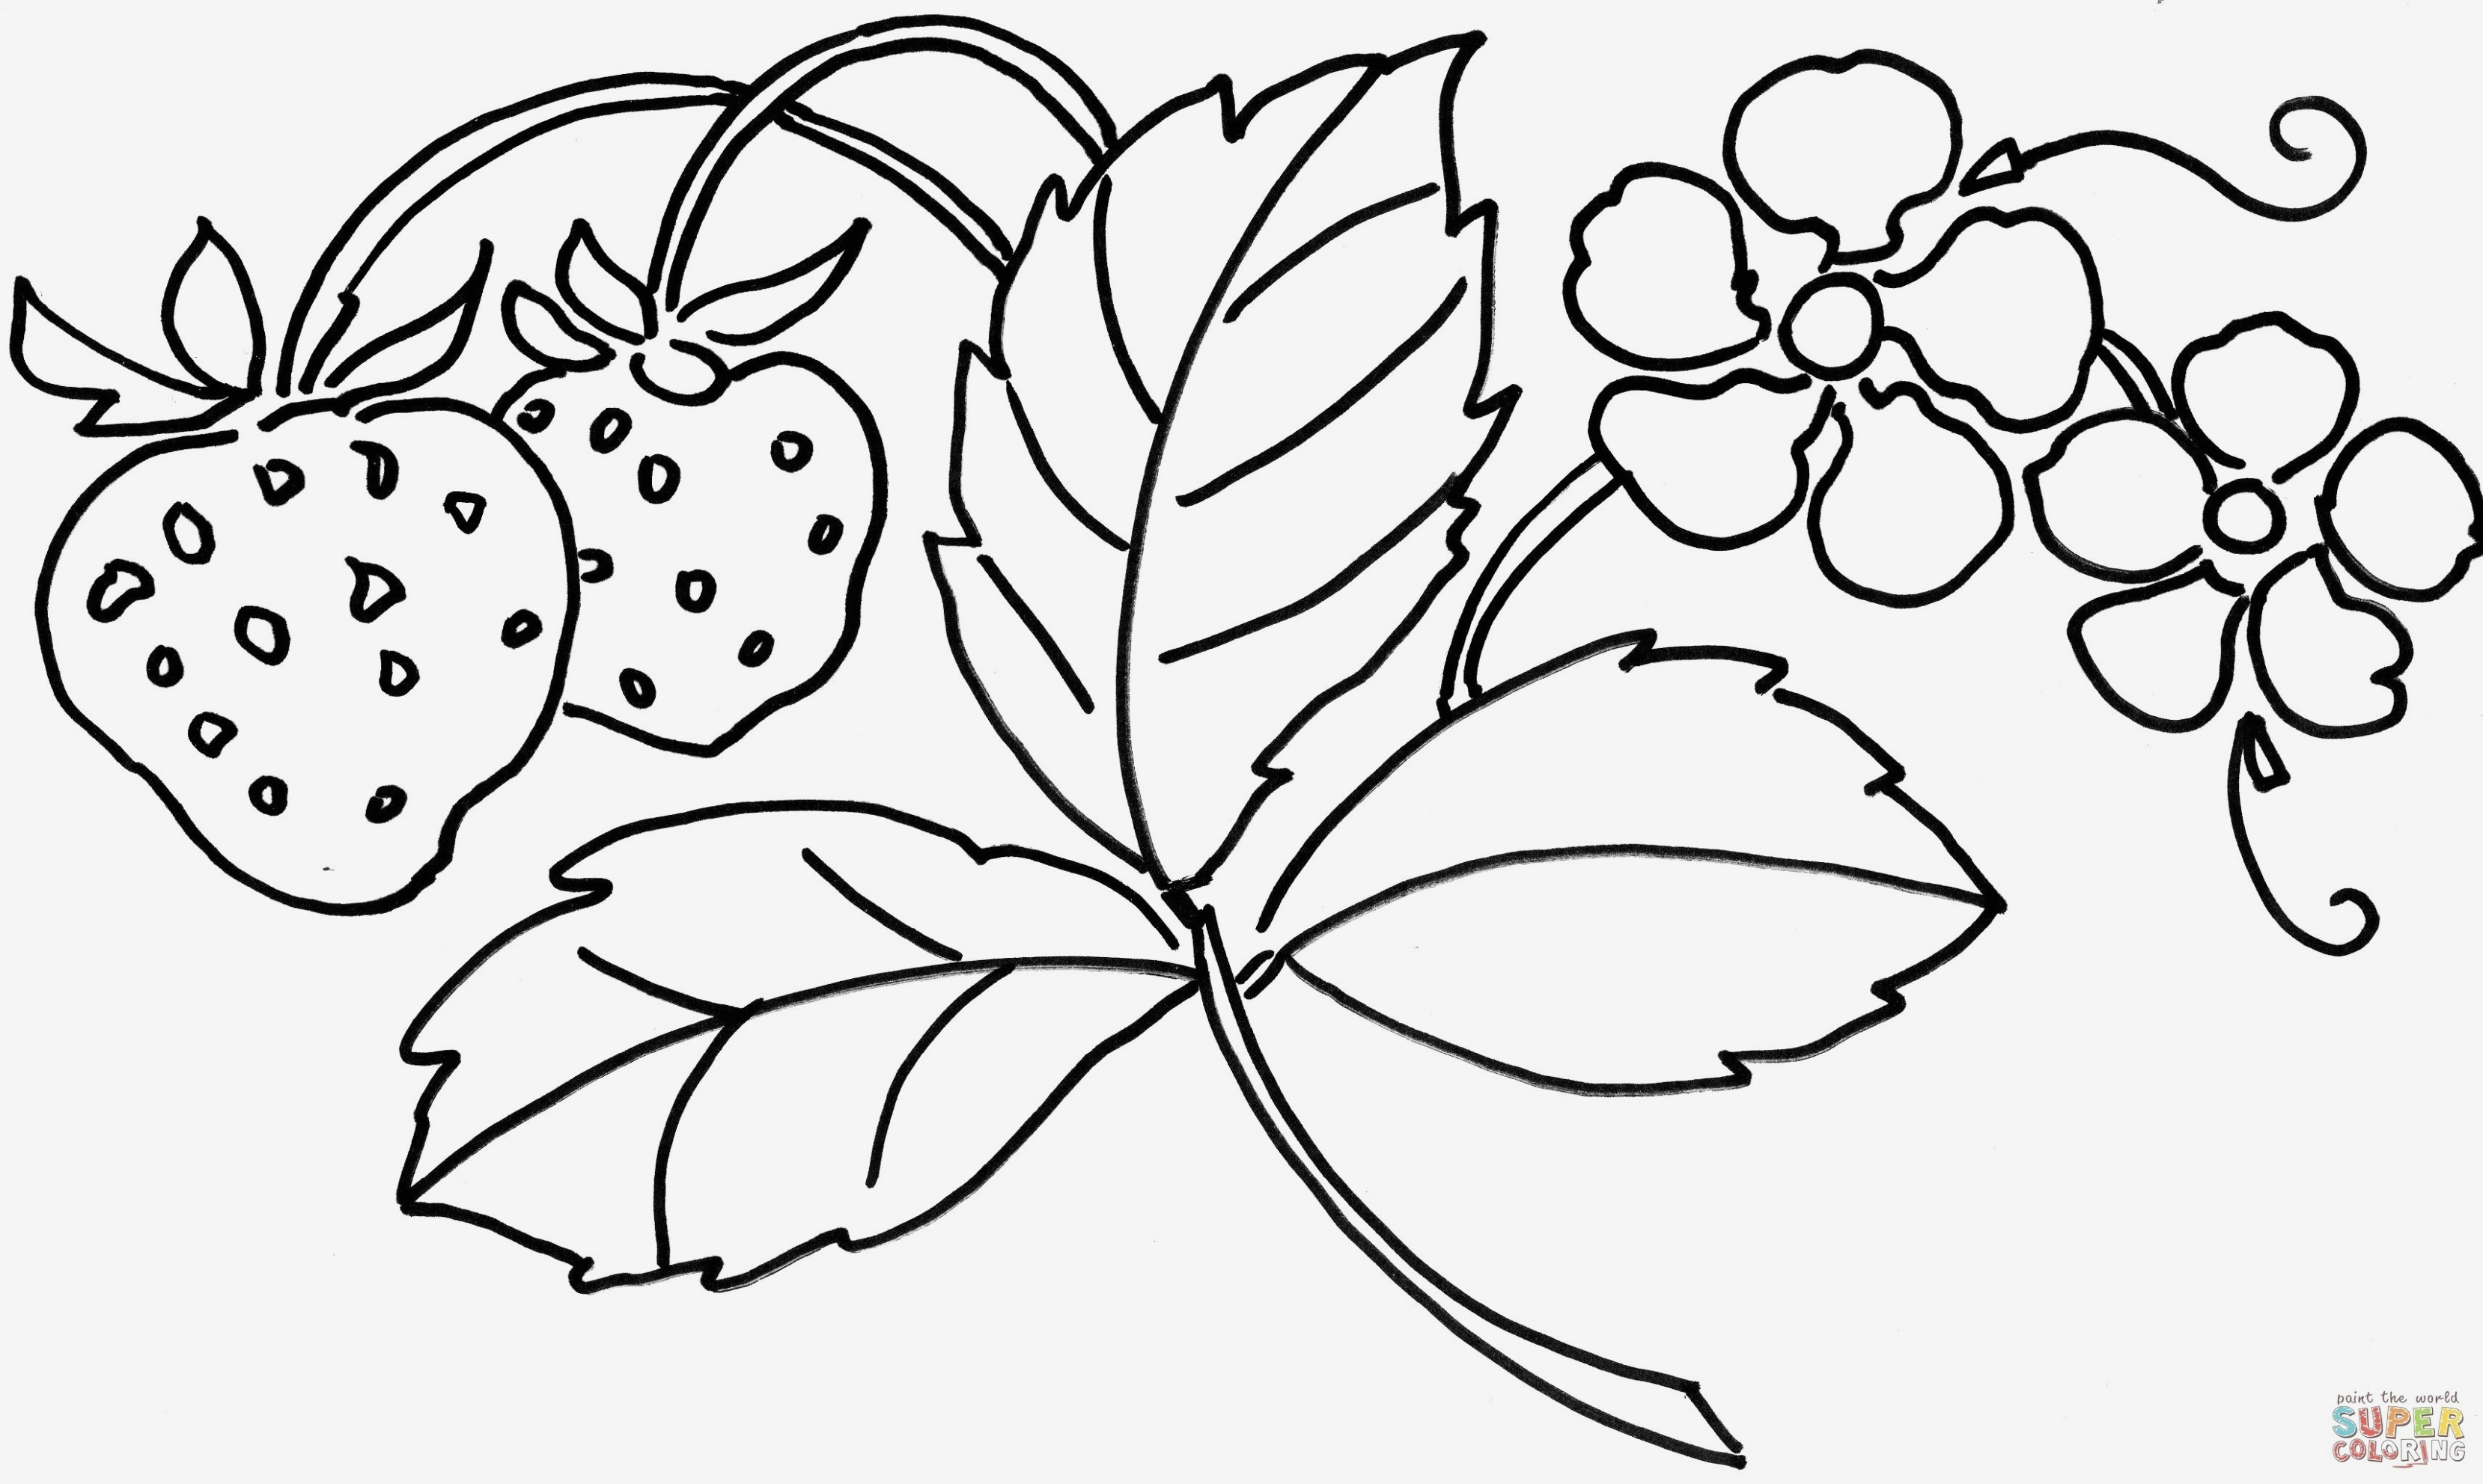 Bike Coloring Pages Free Printable where to Buy Coloring Books ...